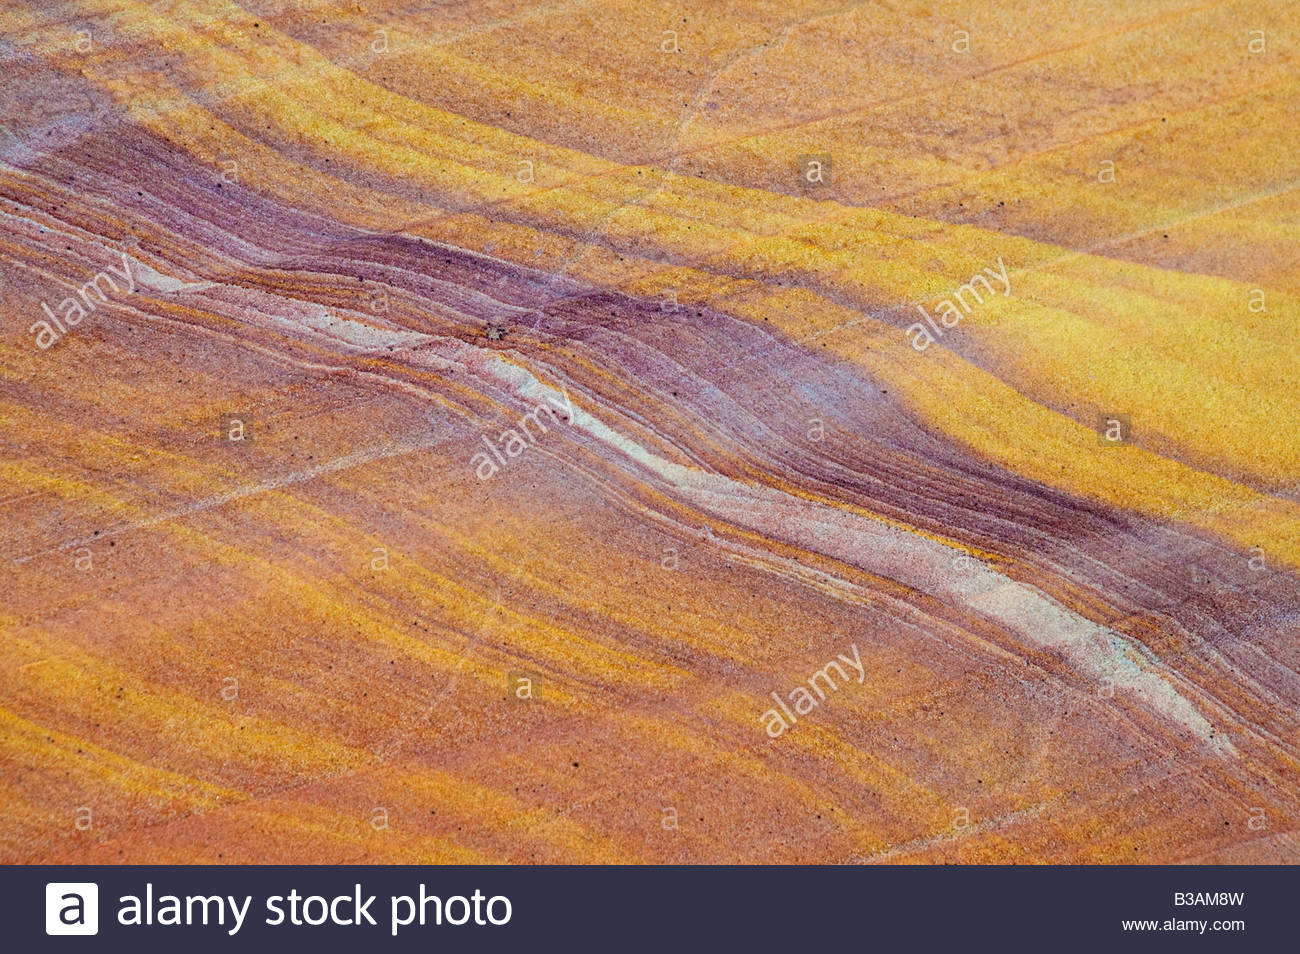 The standstone in a wash in the Valley of Fire State Park Nevada shows a colorful streaked pattern. - Stock Image